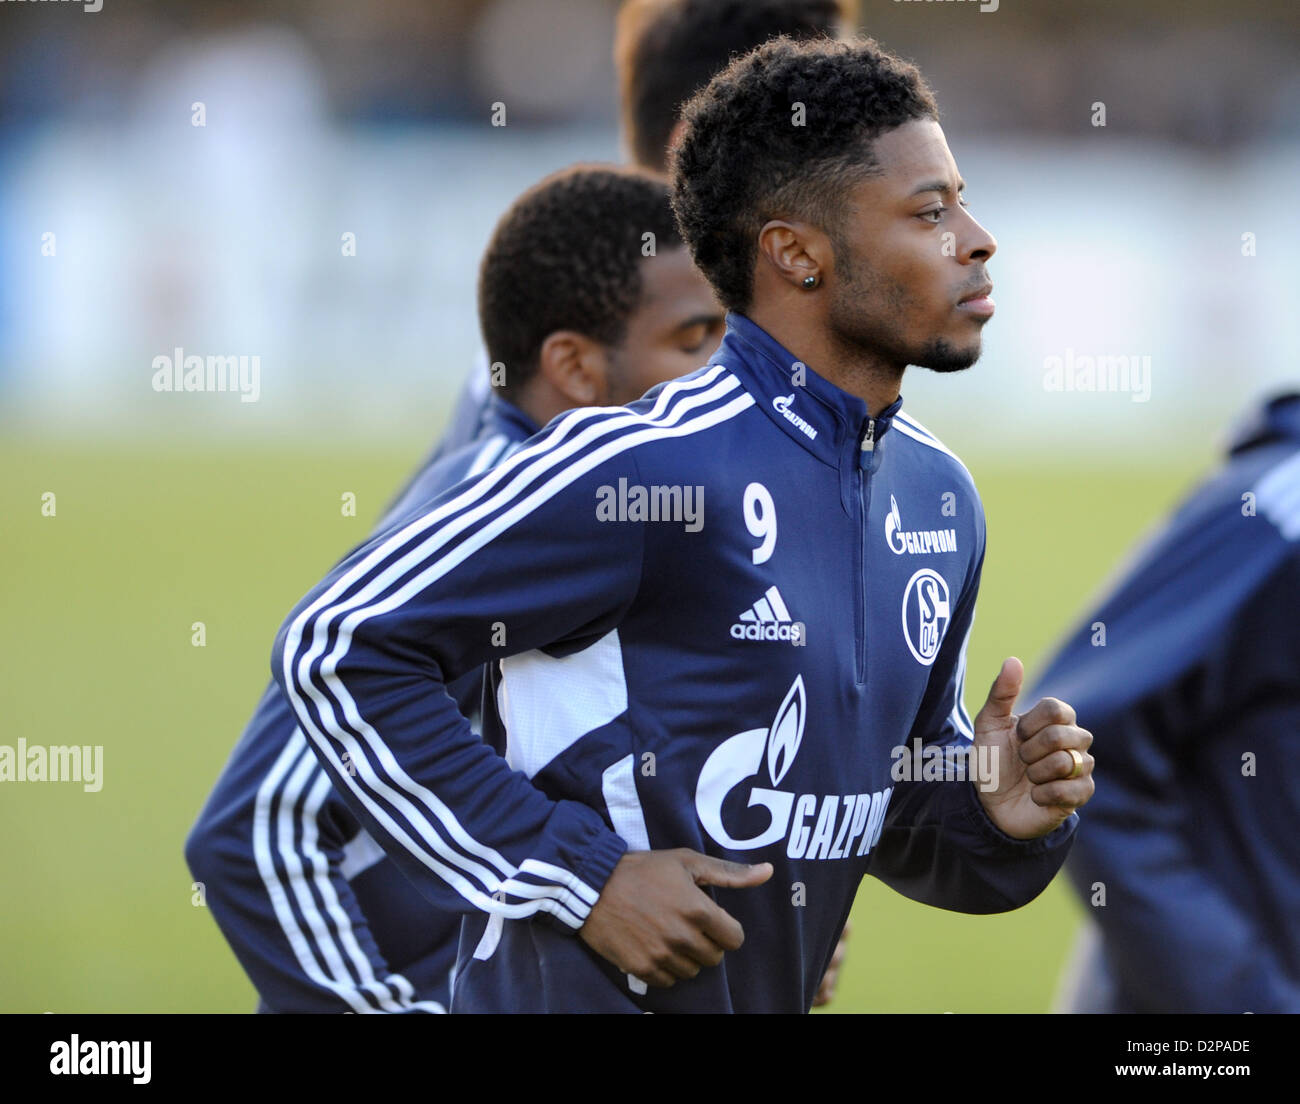 New acquisition of Bundesliga soccer club Schalke 04, Michael Bastos, takes part in a training session of Schalke - Stock Image